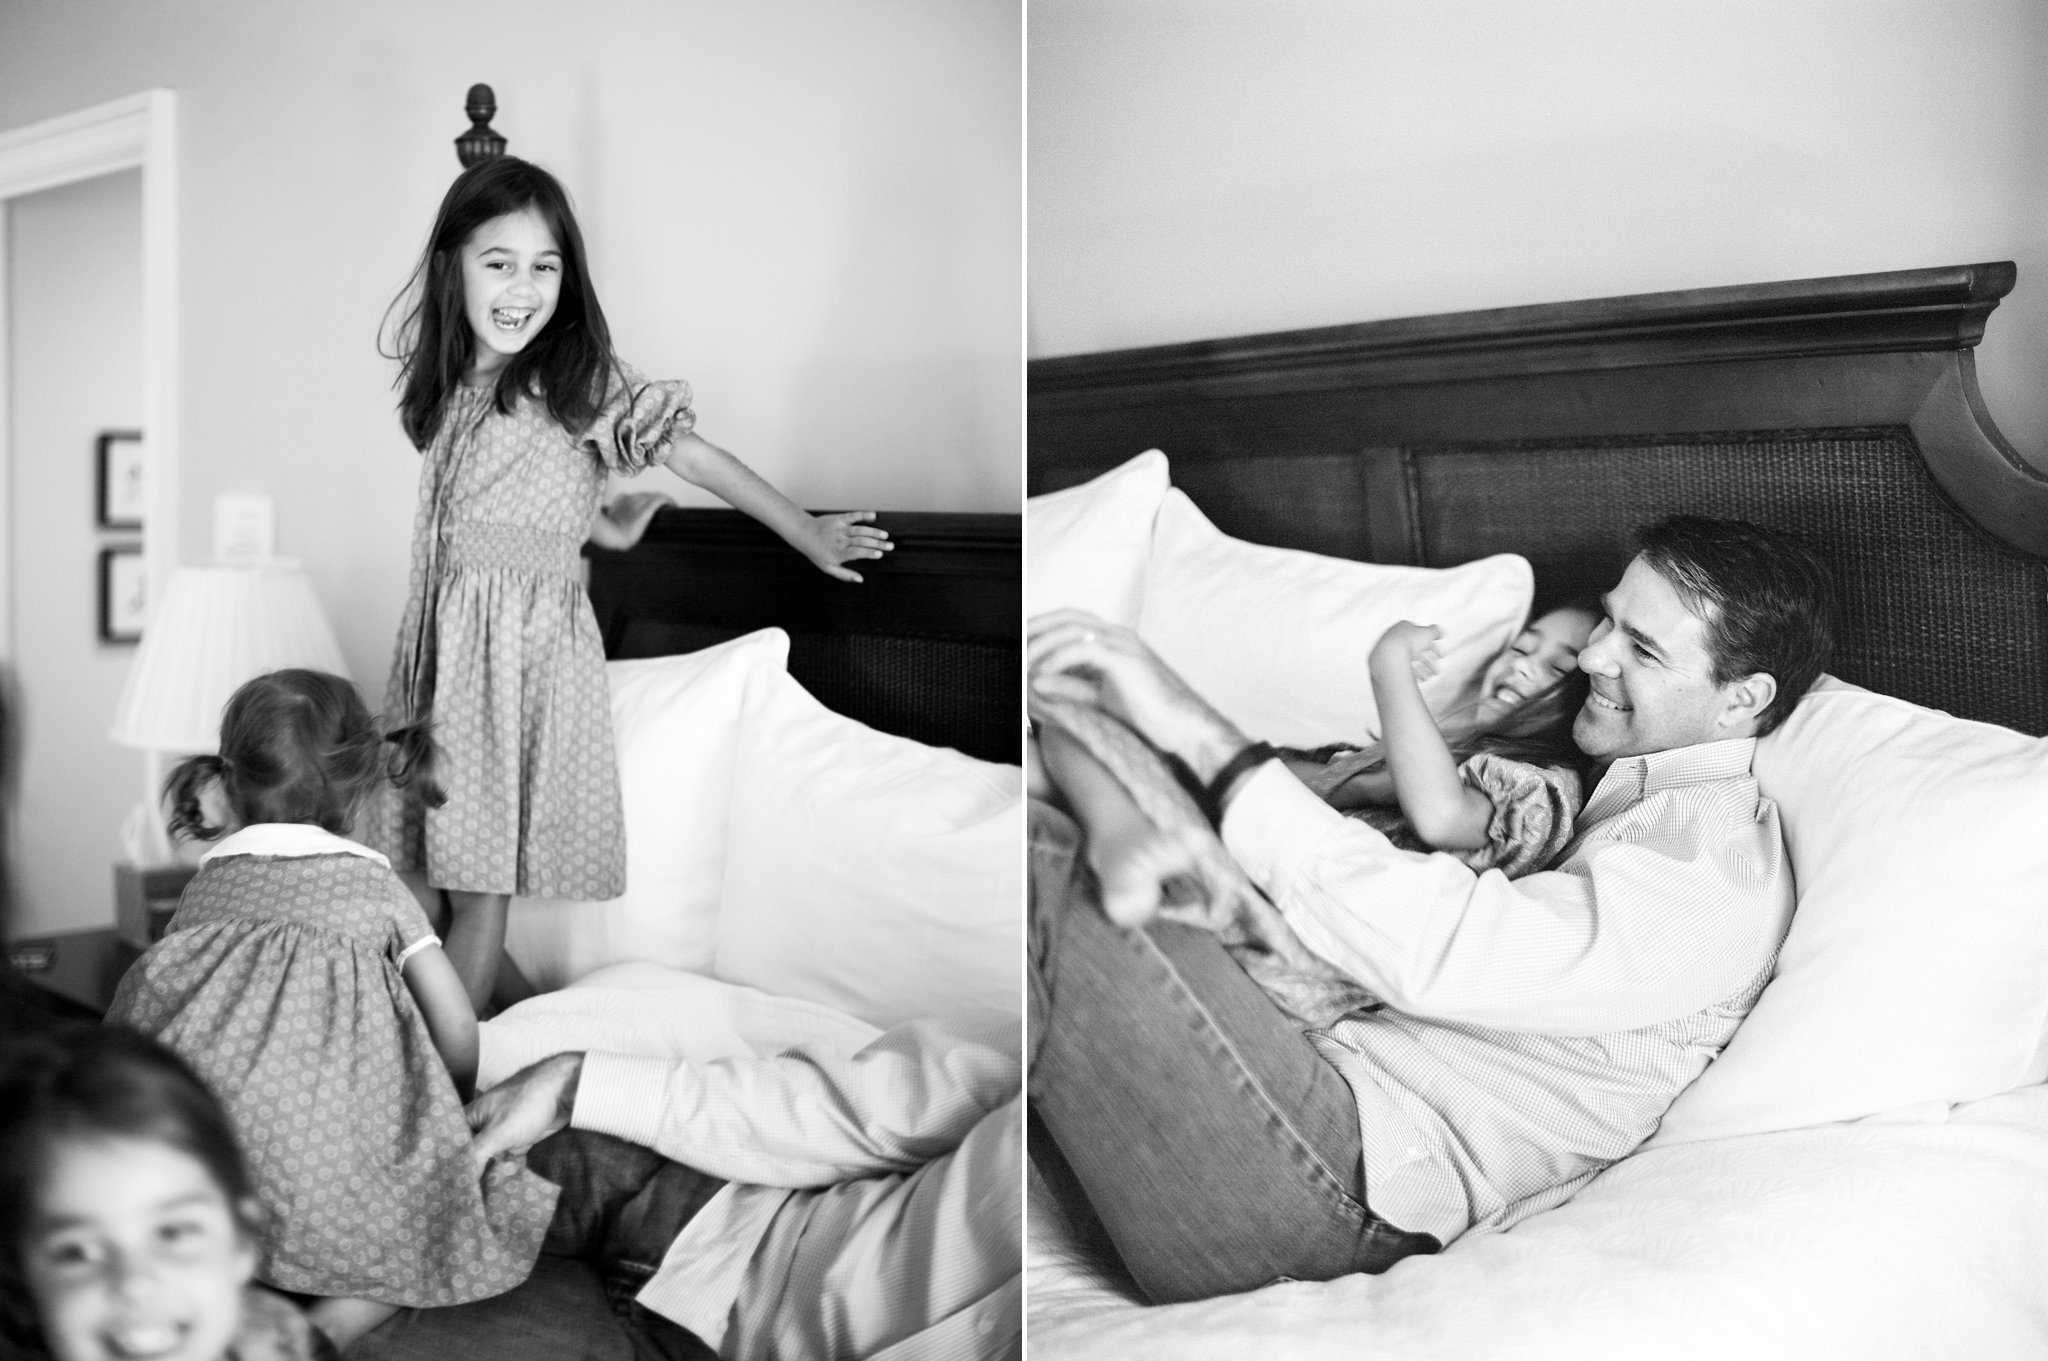 tallahassee family photographer shannon griffin photography_0018.jpg